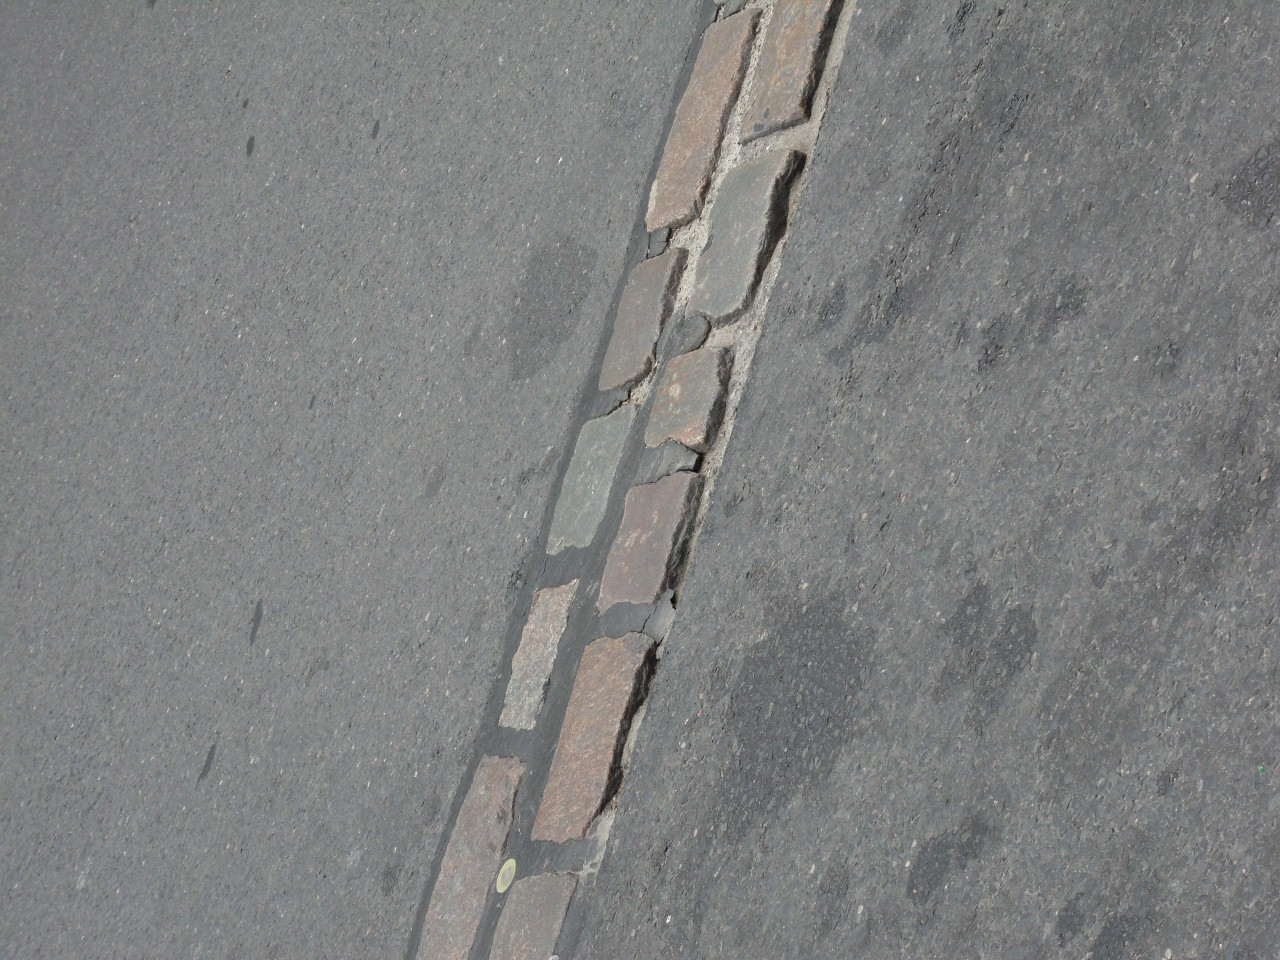 The Berlin wall is marked by these two bricks anywhere it has been removed